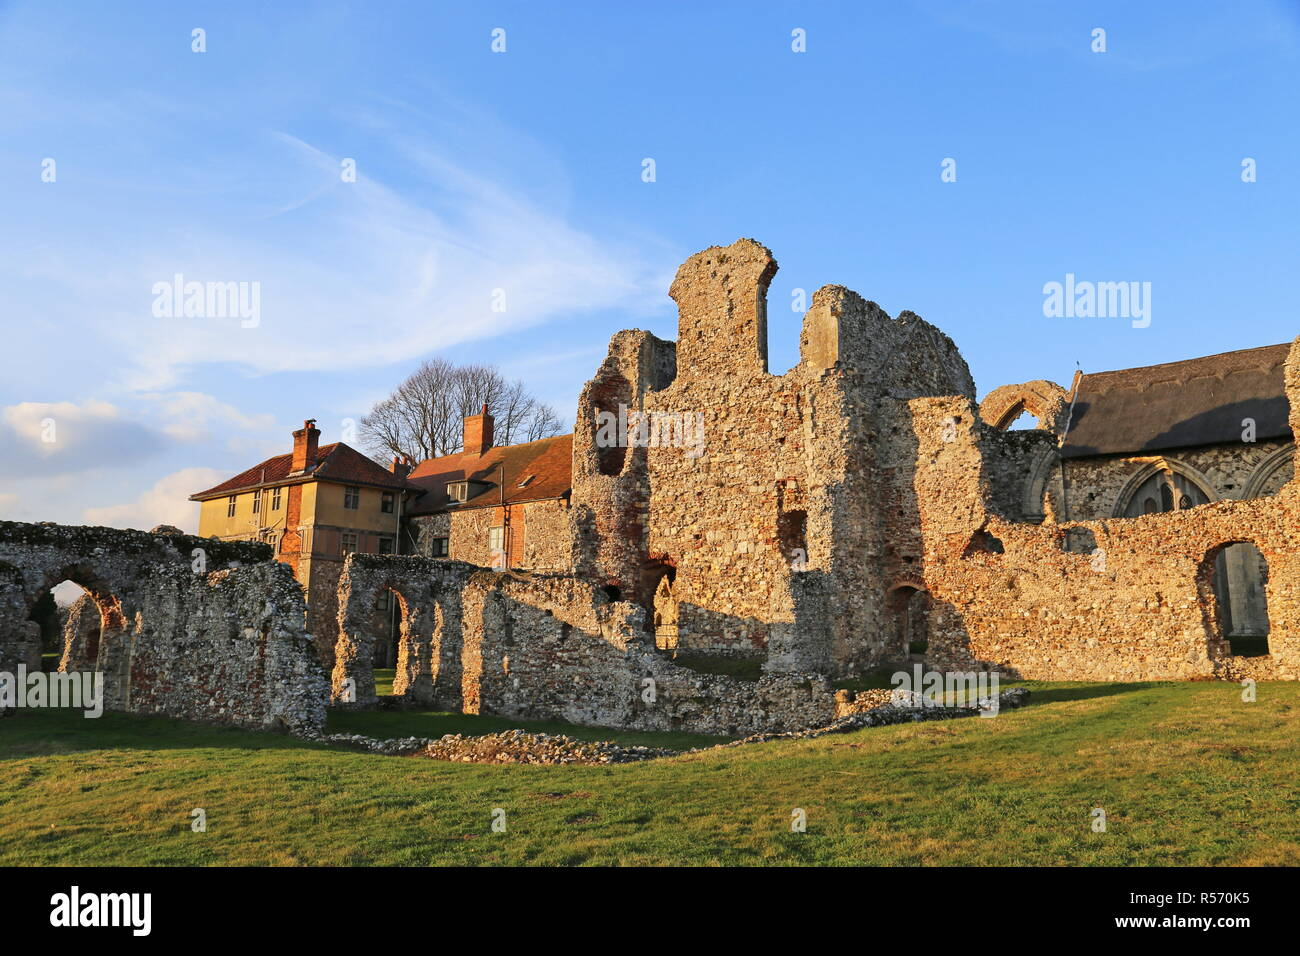 Leiston Abbey, Suffolk Coastal district, Suffolk, East Anglia, England, Great Britain, United Kingdom, UK, Europe - Stock Image